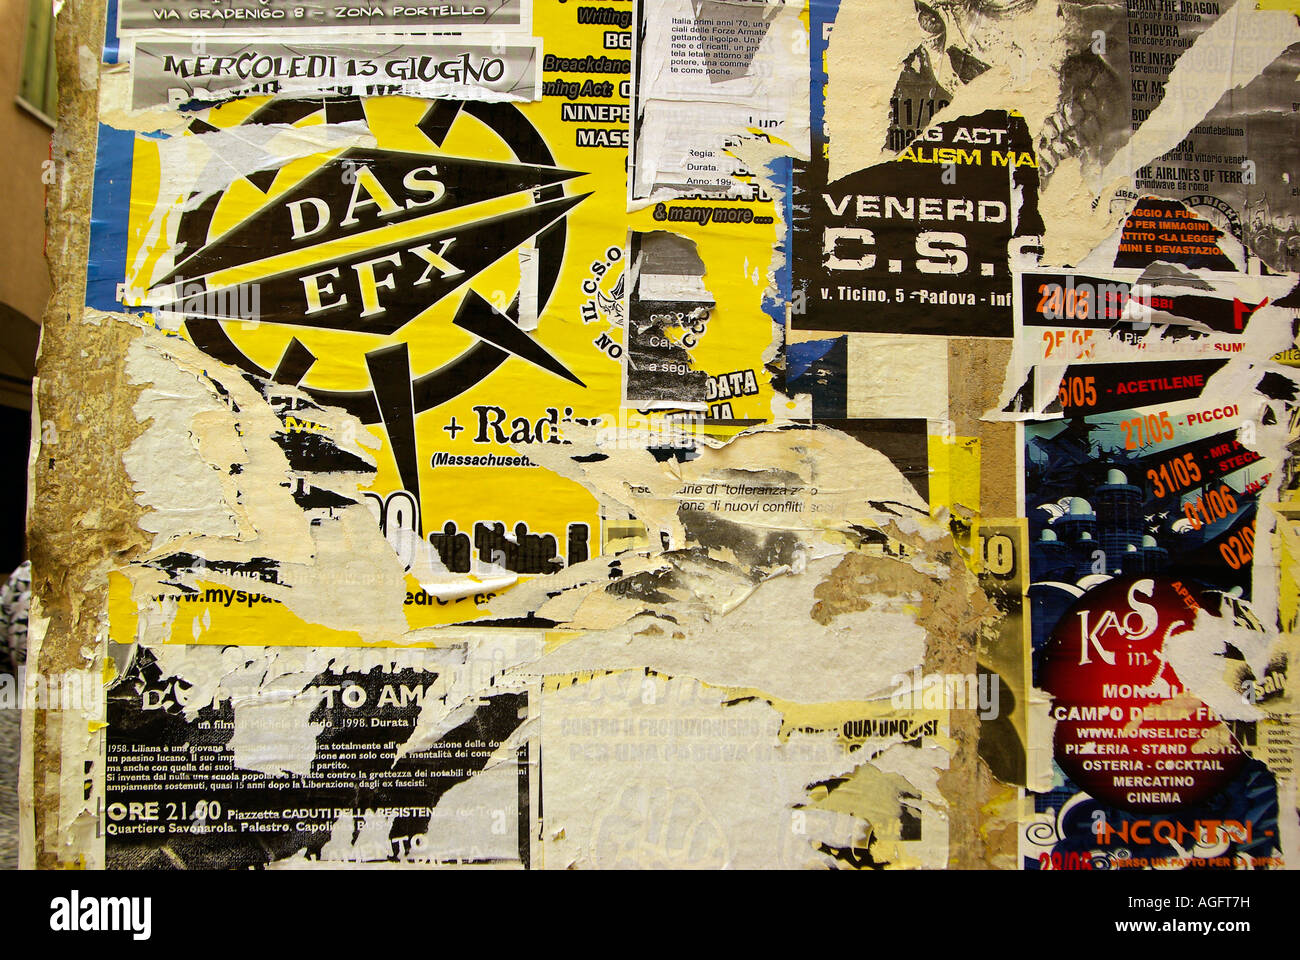 Street Art: Student protest posters interspersed with dance clubs Padua Italy - Stock Image